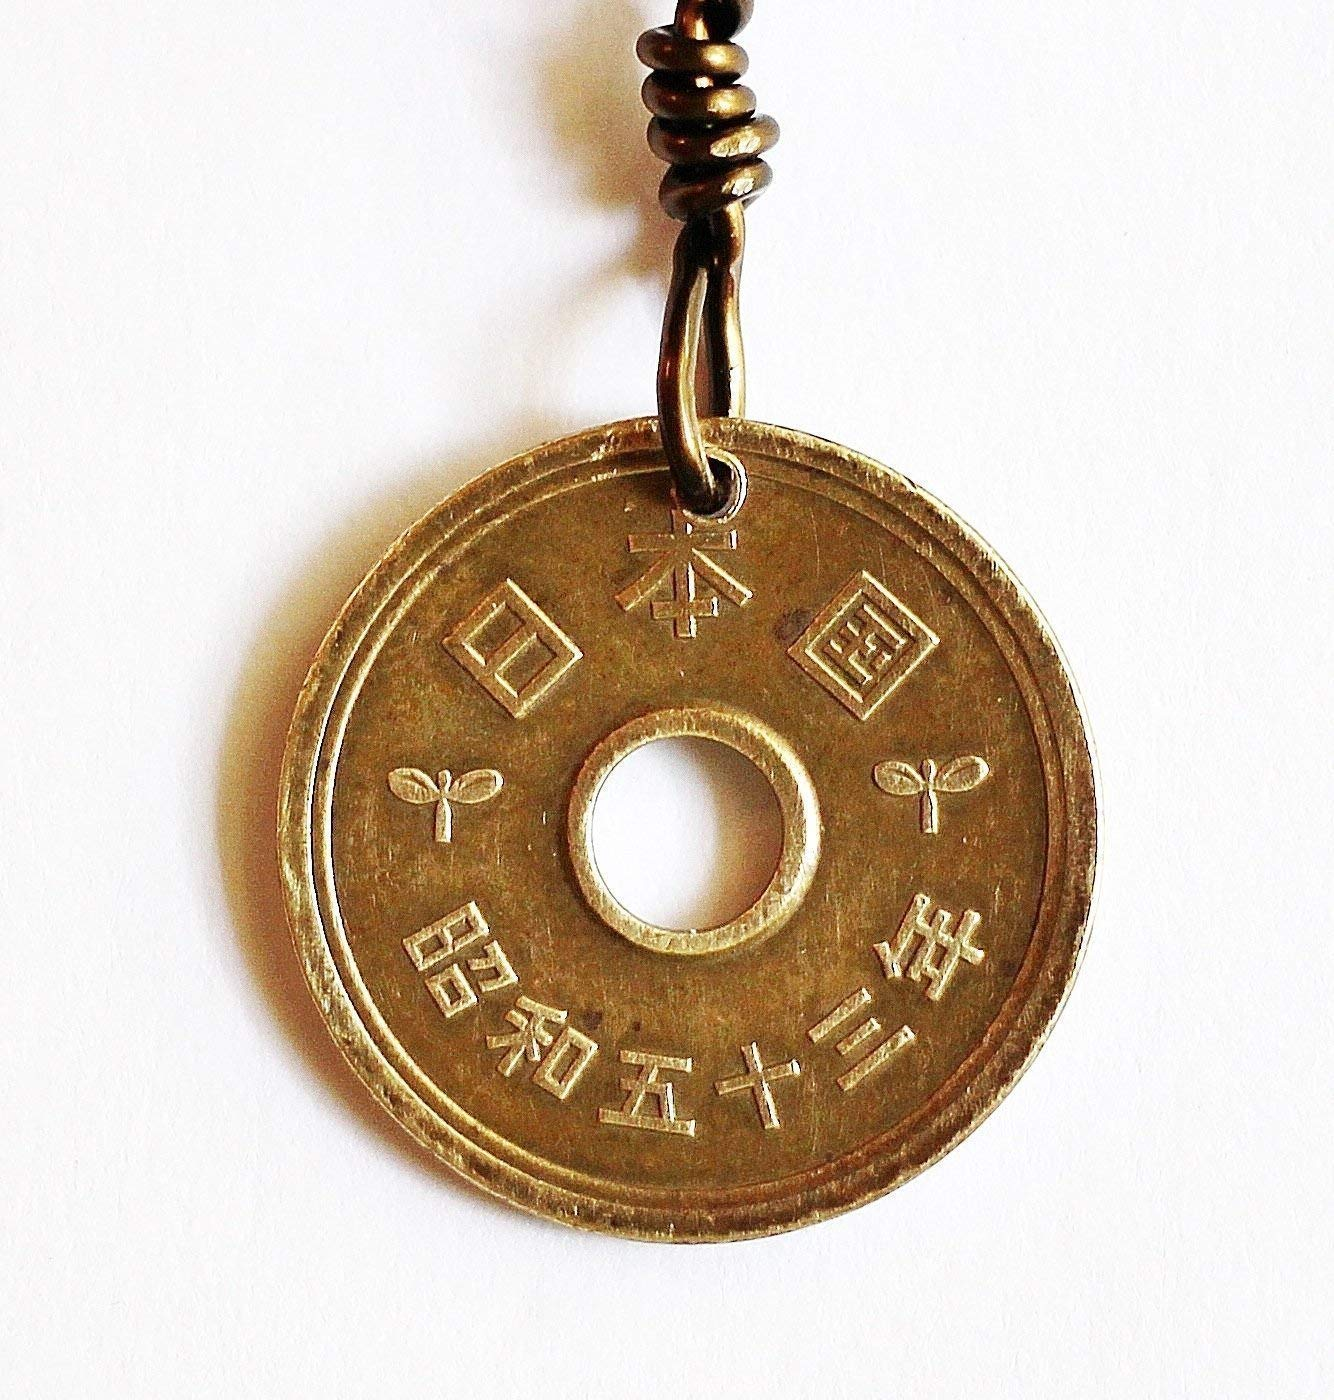 Coin Jewelry Brass Ring Japanese Ring Lucky Coin Lucky Ring Travel Ring Japanese 5 Yen Coin Ring